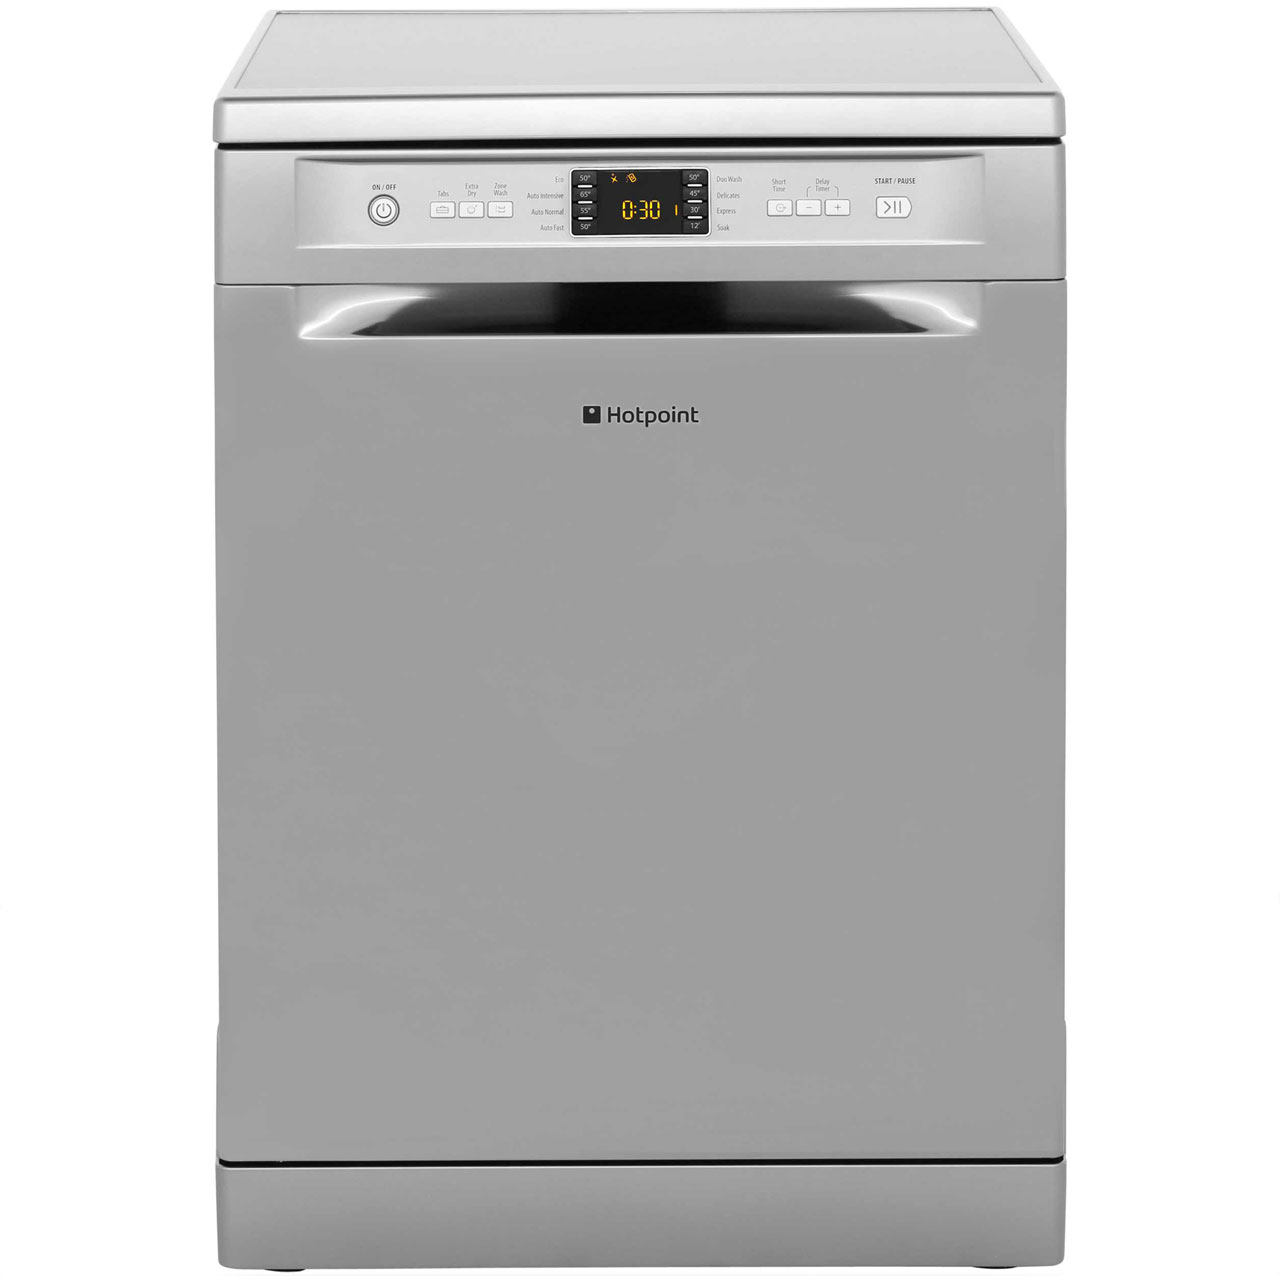 buy cheap hotpoint dishwasher compare dishwashers prices. Black Bedroom Furniture Sets. Home Design Ideas